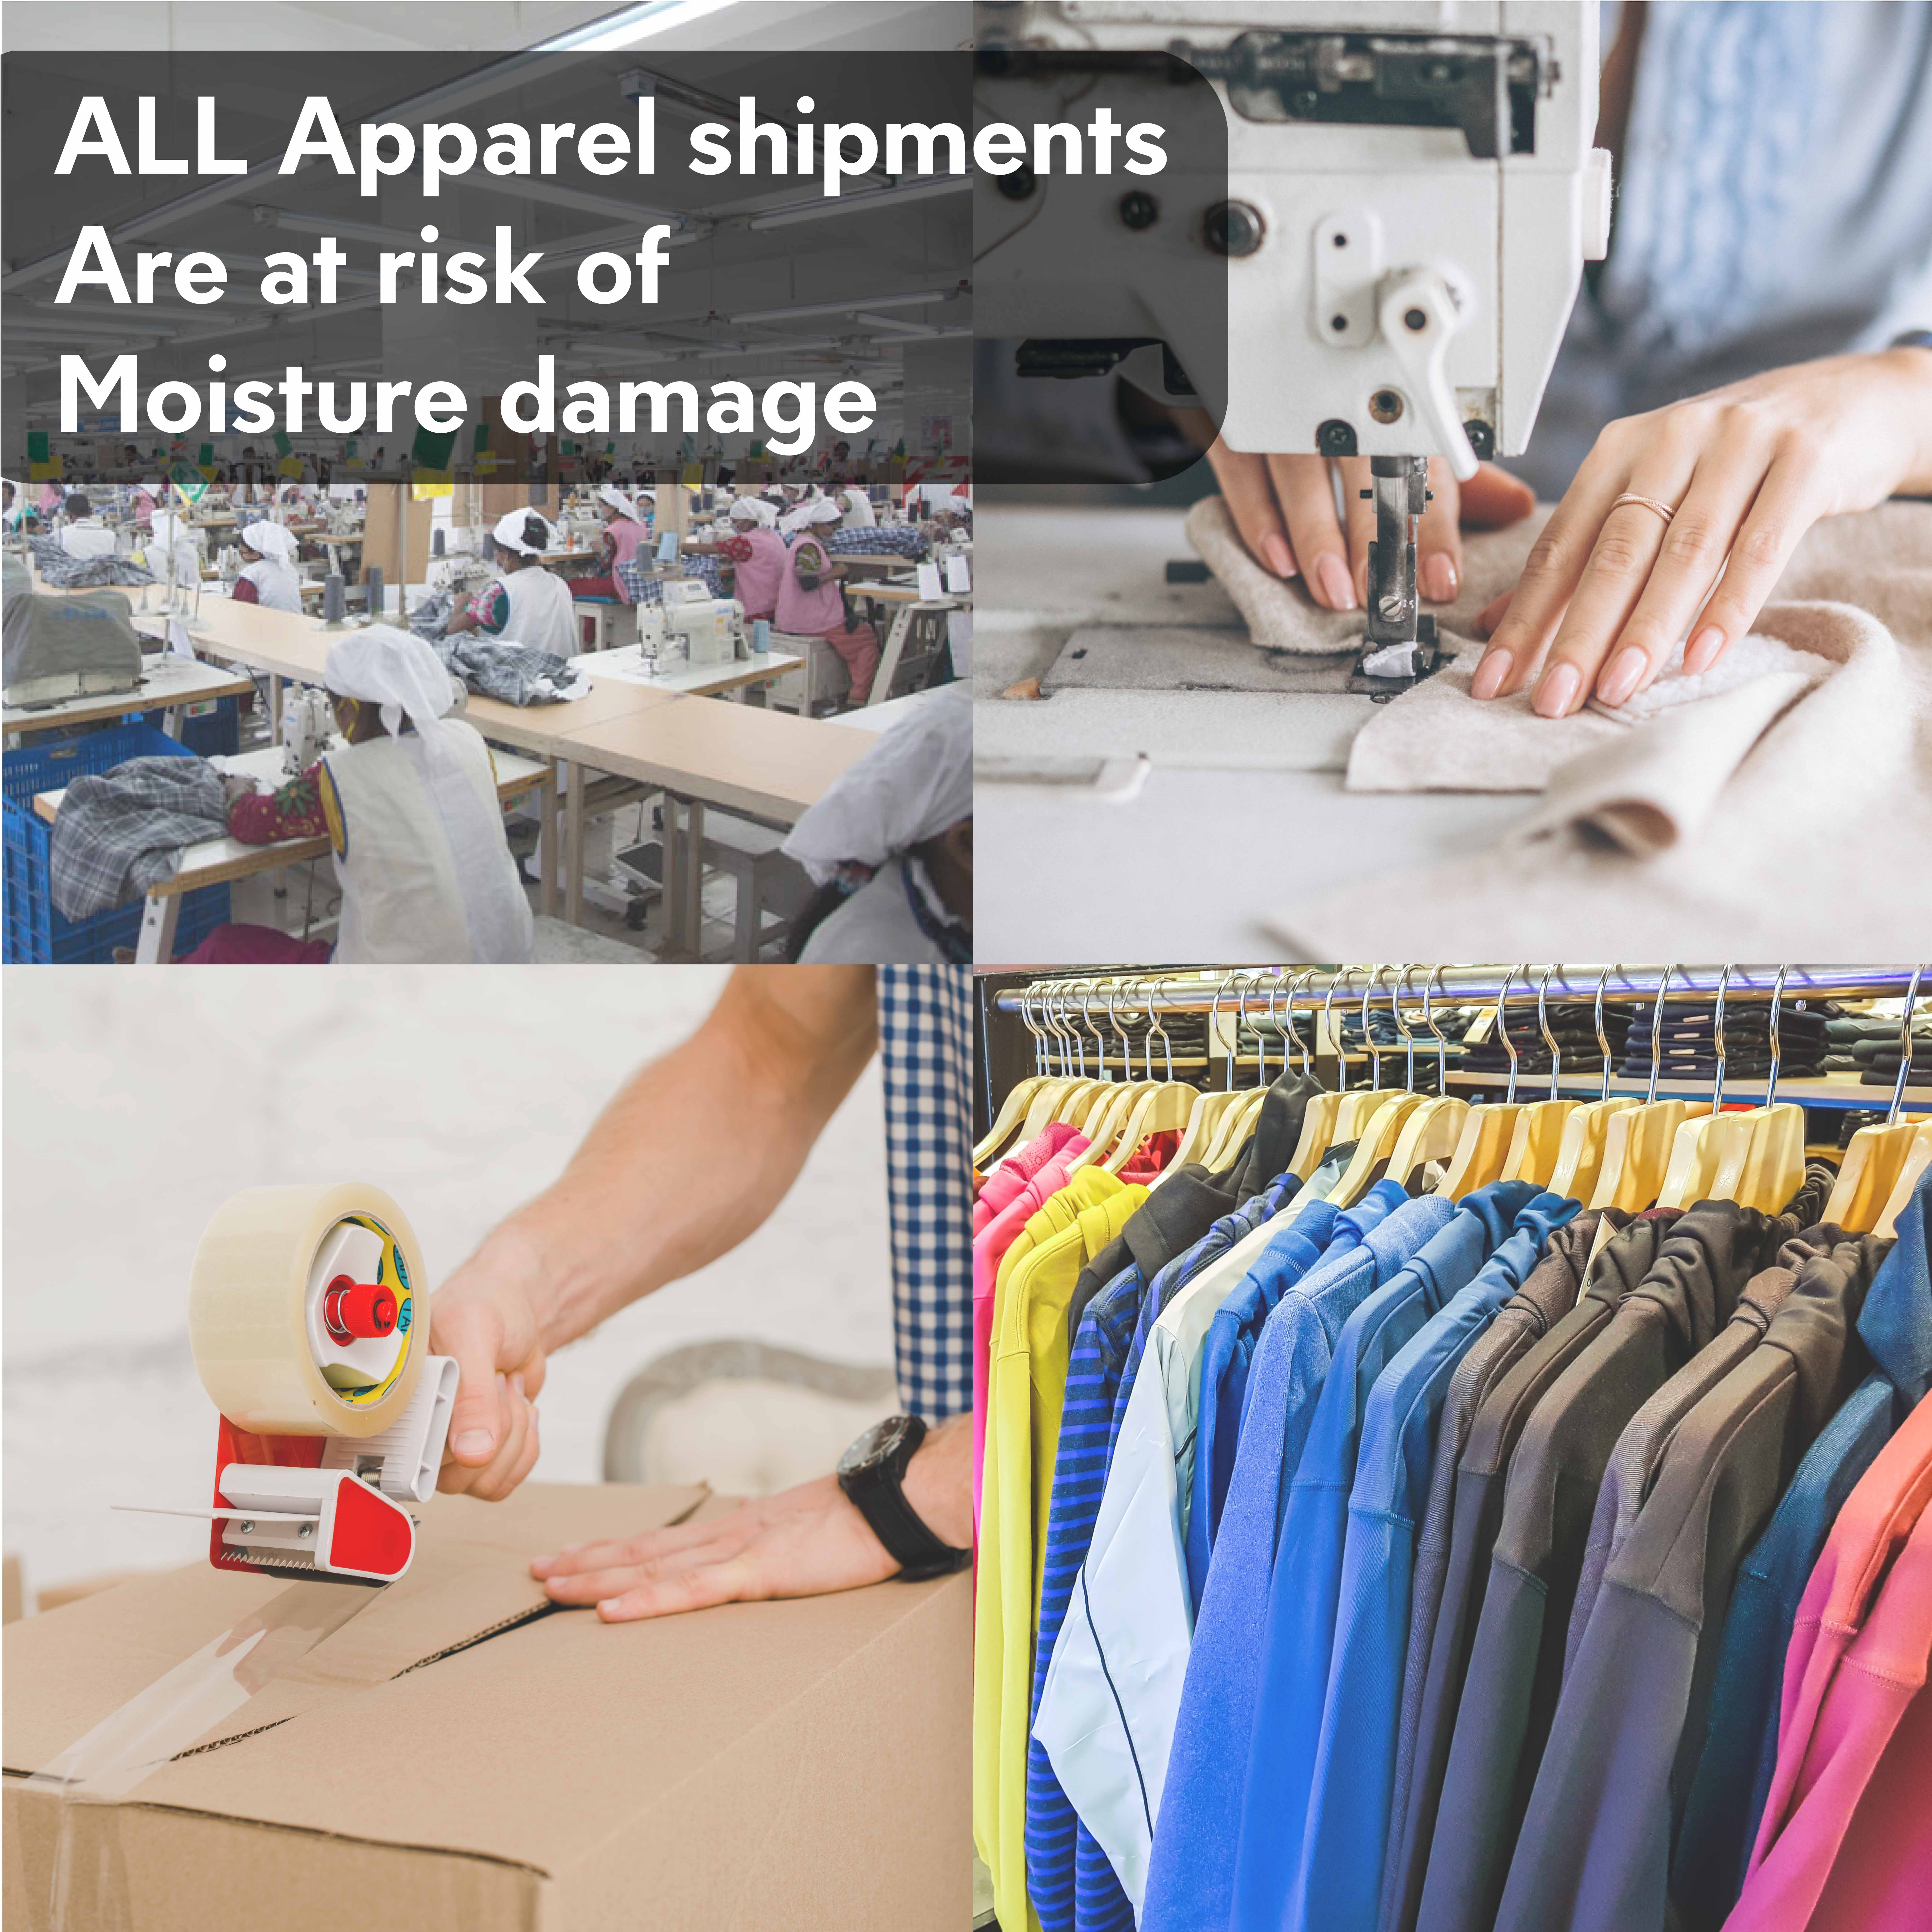 #ALL Apparel shipments are at risk of moisture damage